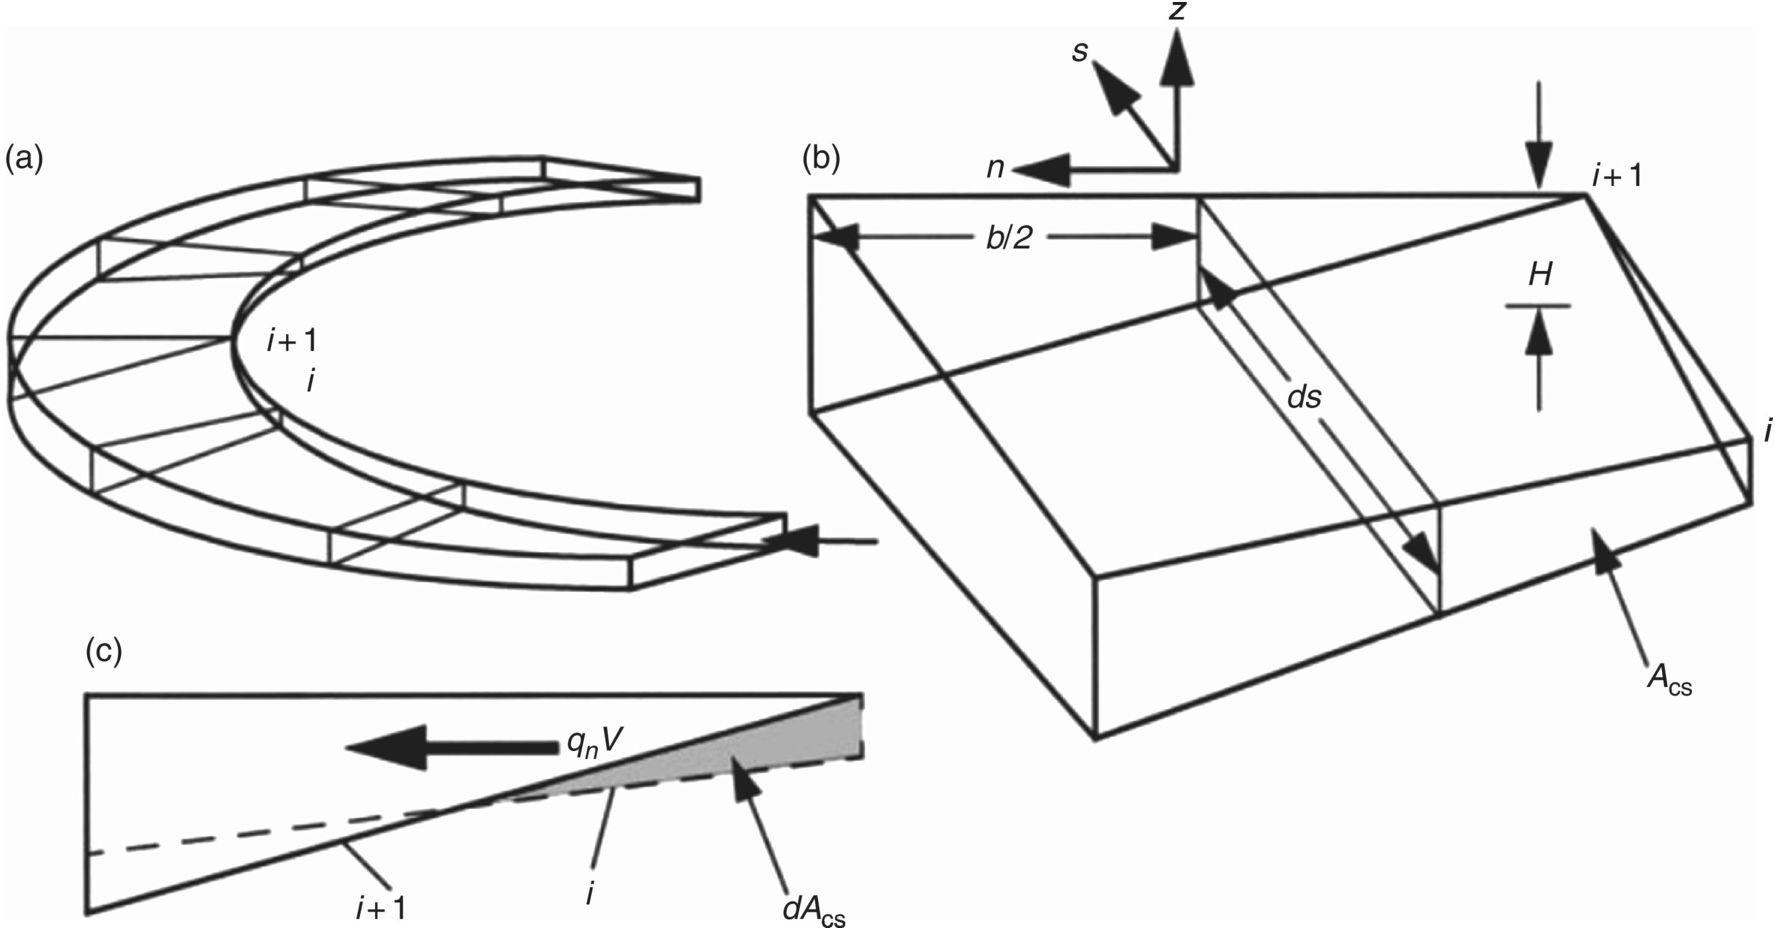 Gt Galleries For Gt How To Draw Shear Force And Bending Moment Diagram